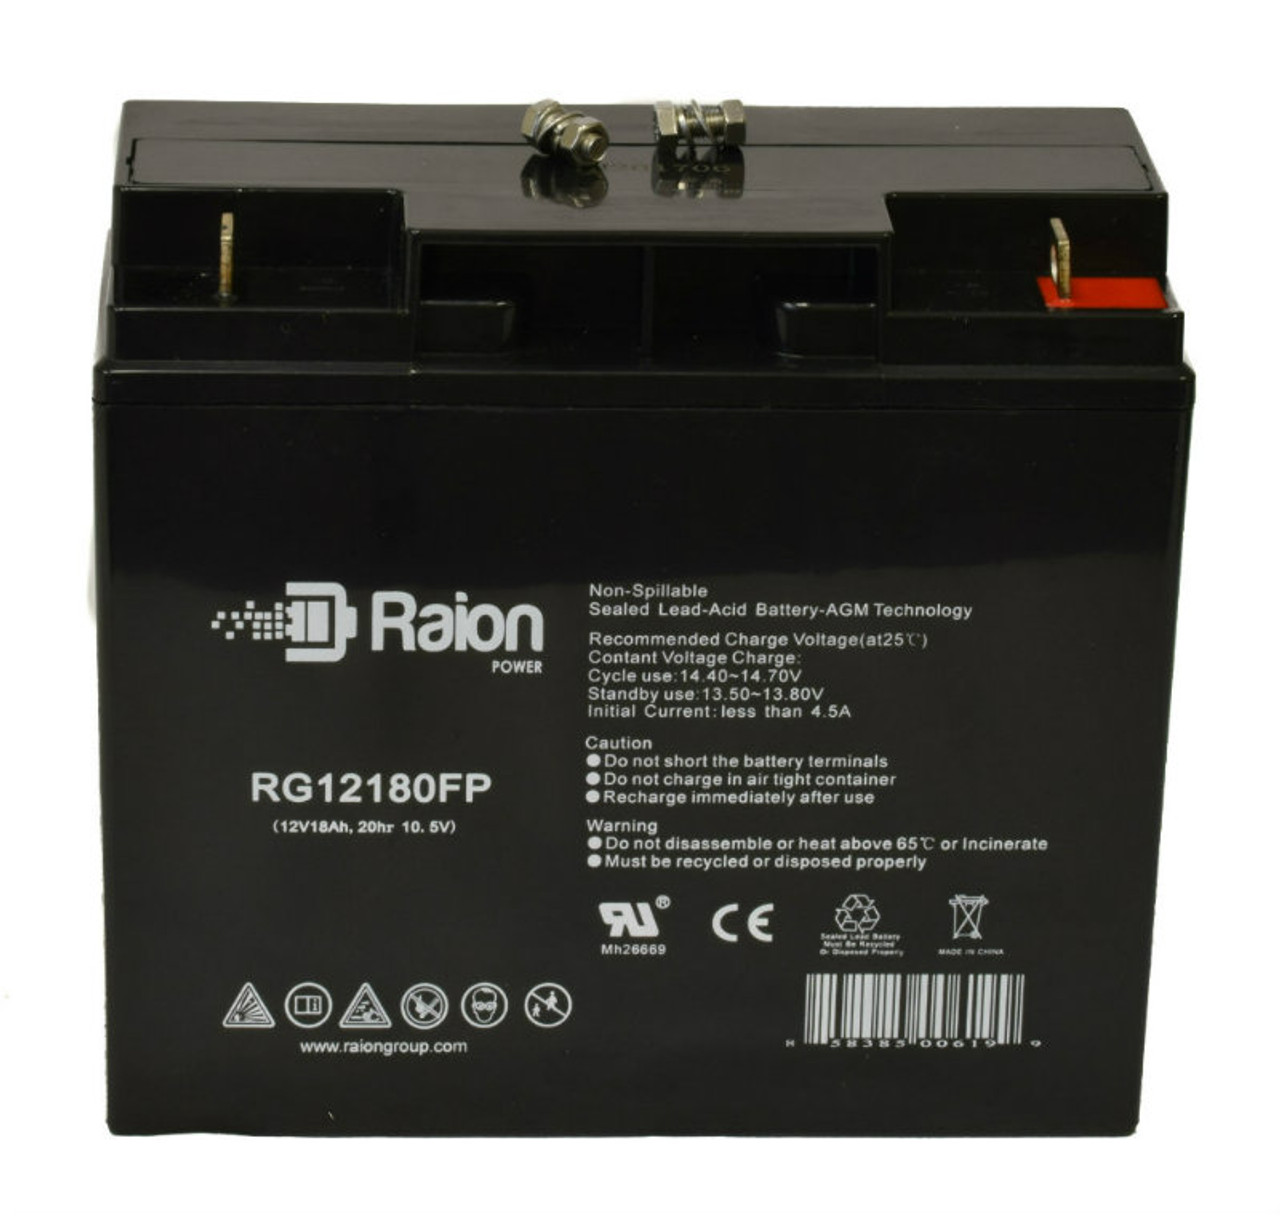 Raion Power RG12180FP Replacement Battery For Amigo RT Express Electric Wheelchair